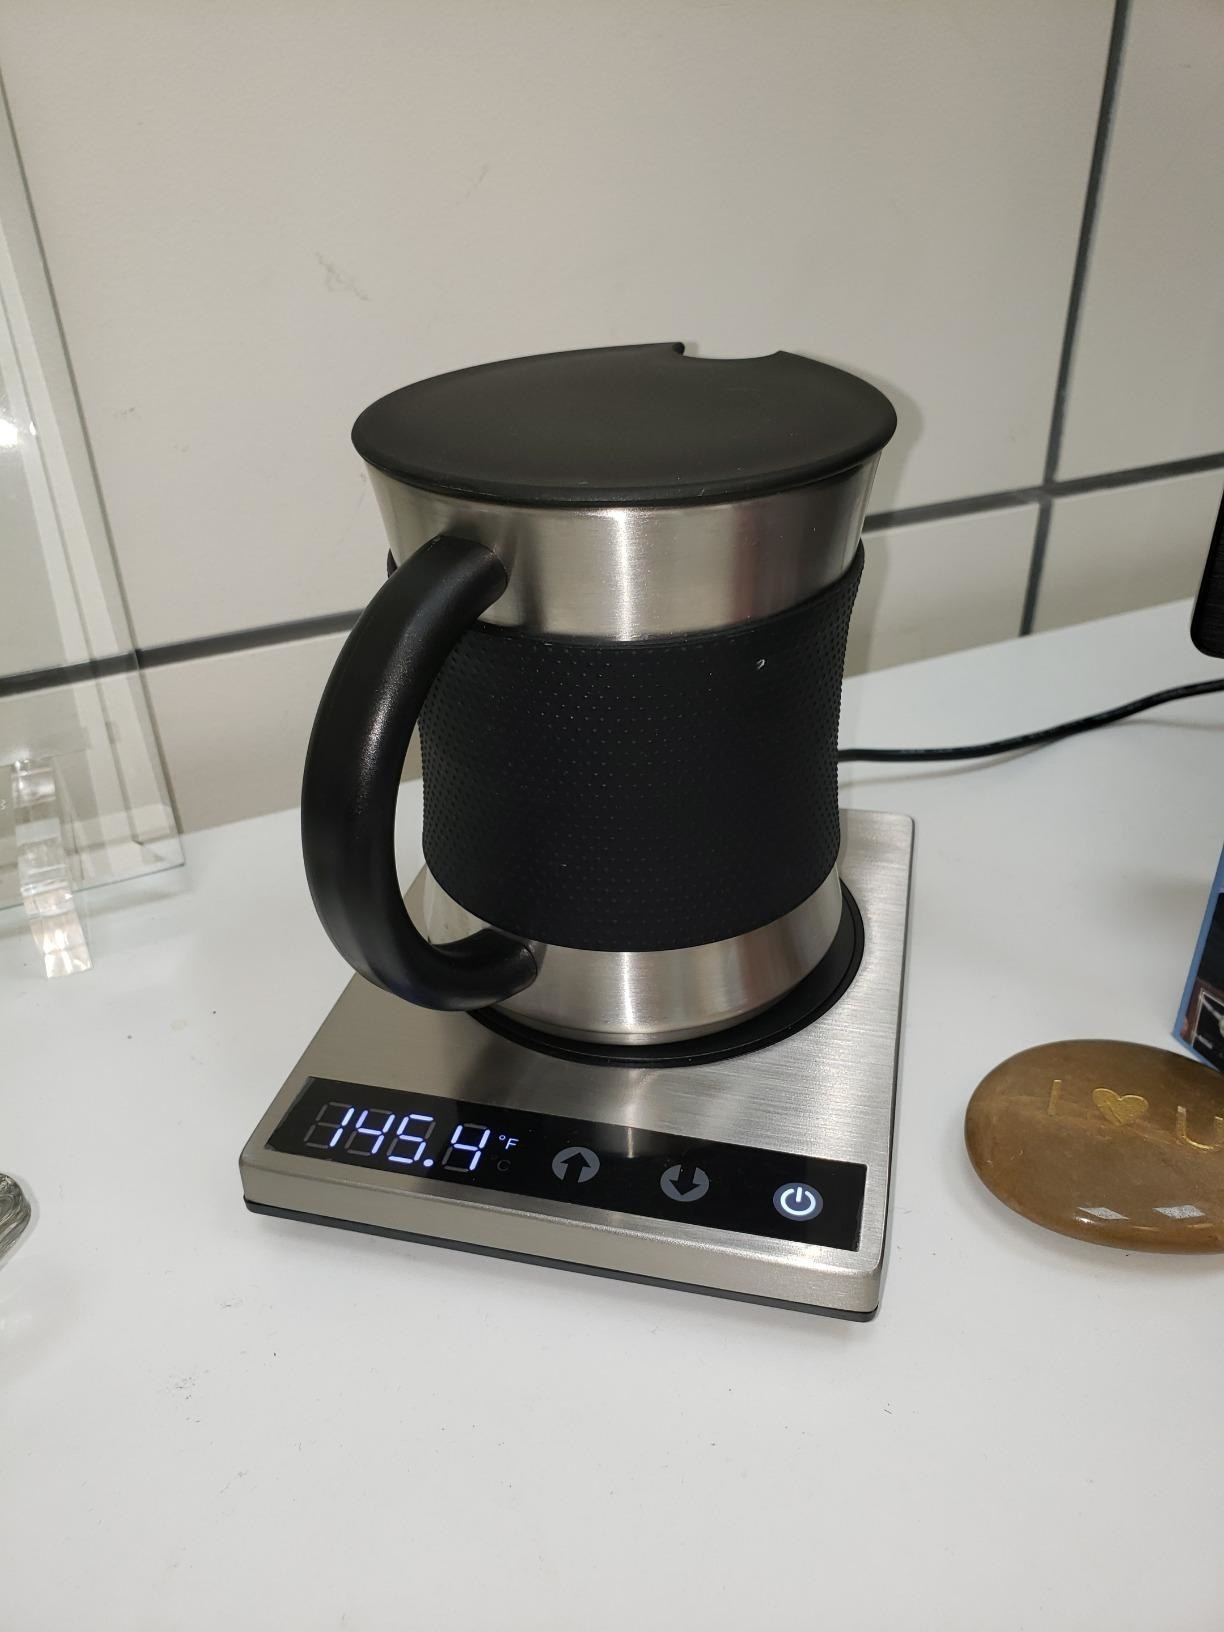 Reviewer photo of mug warmer with included mug placed on countertop